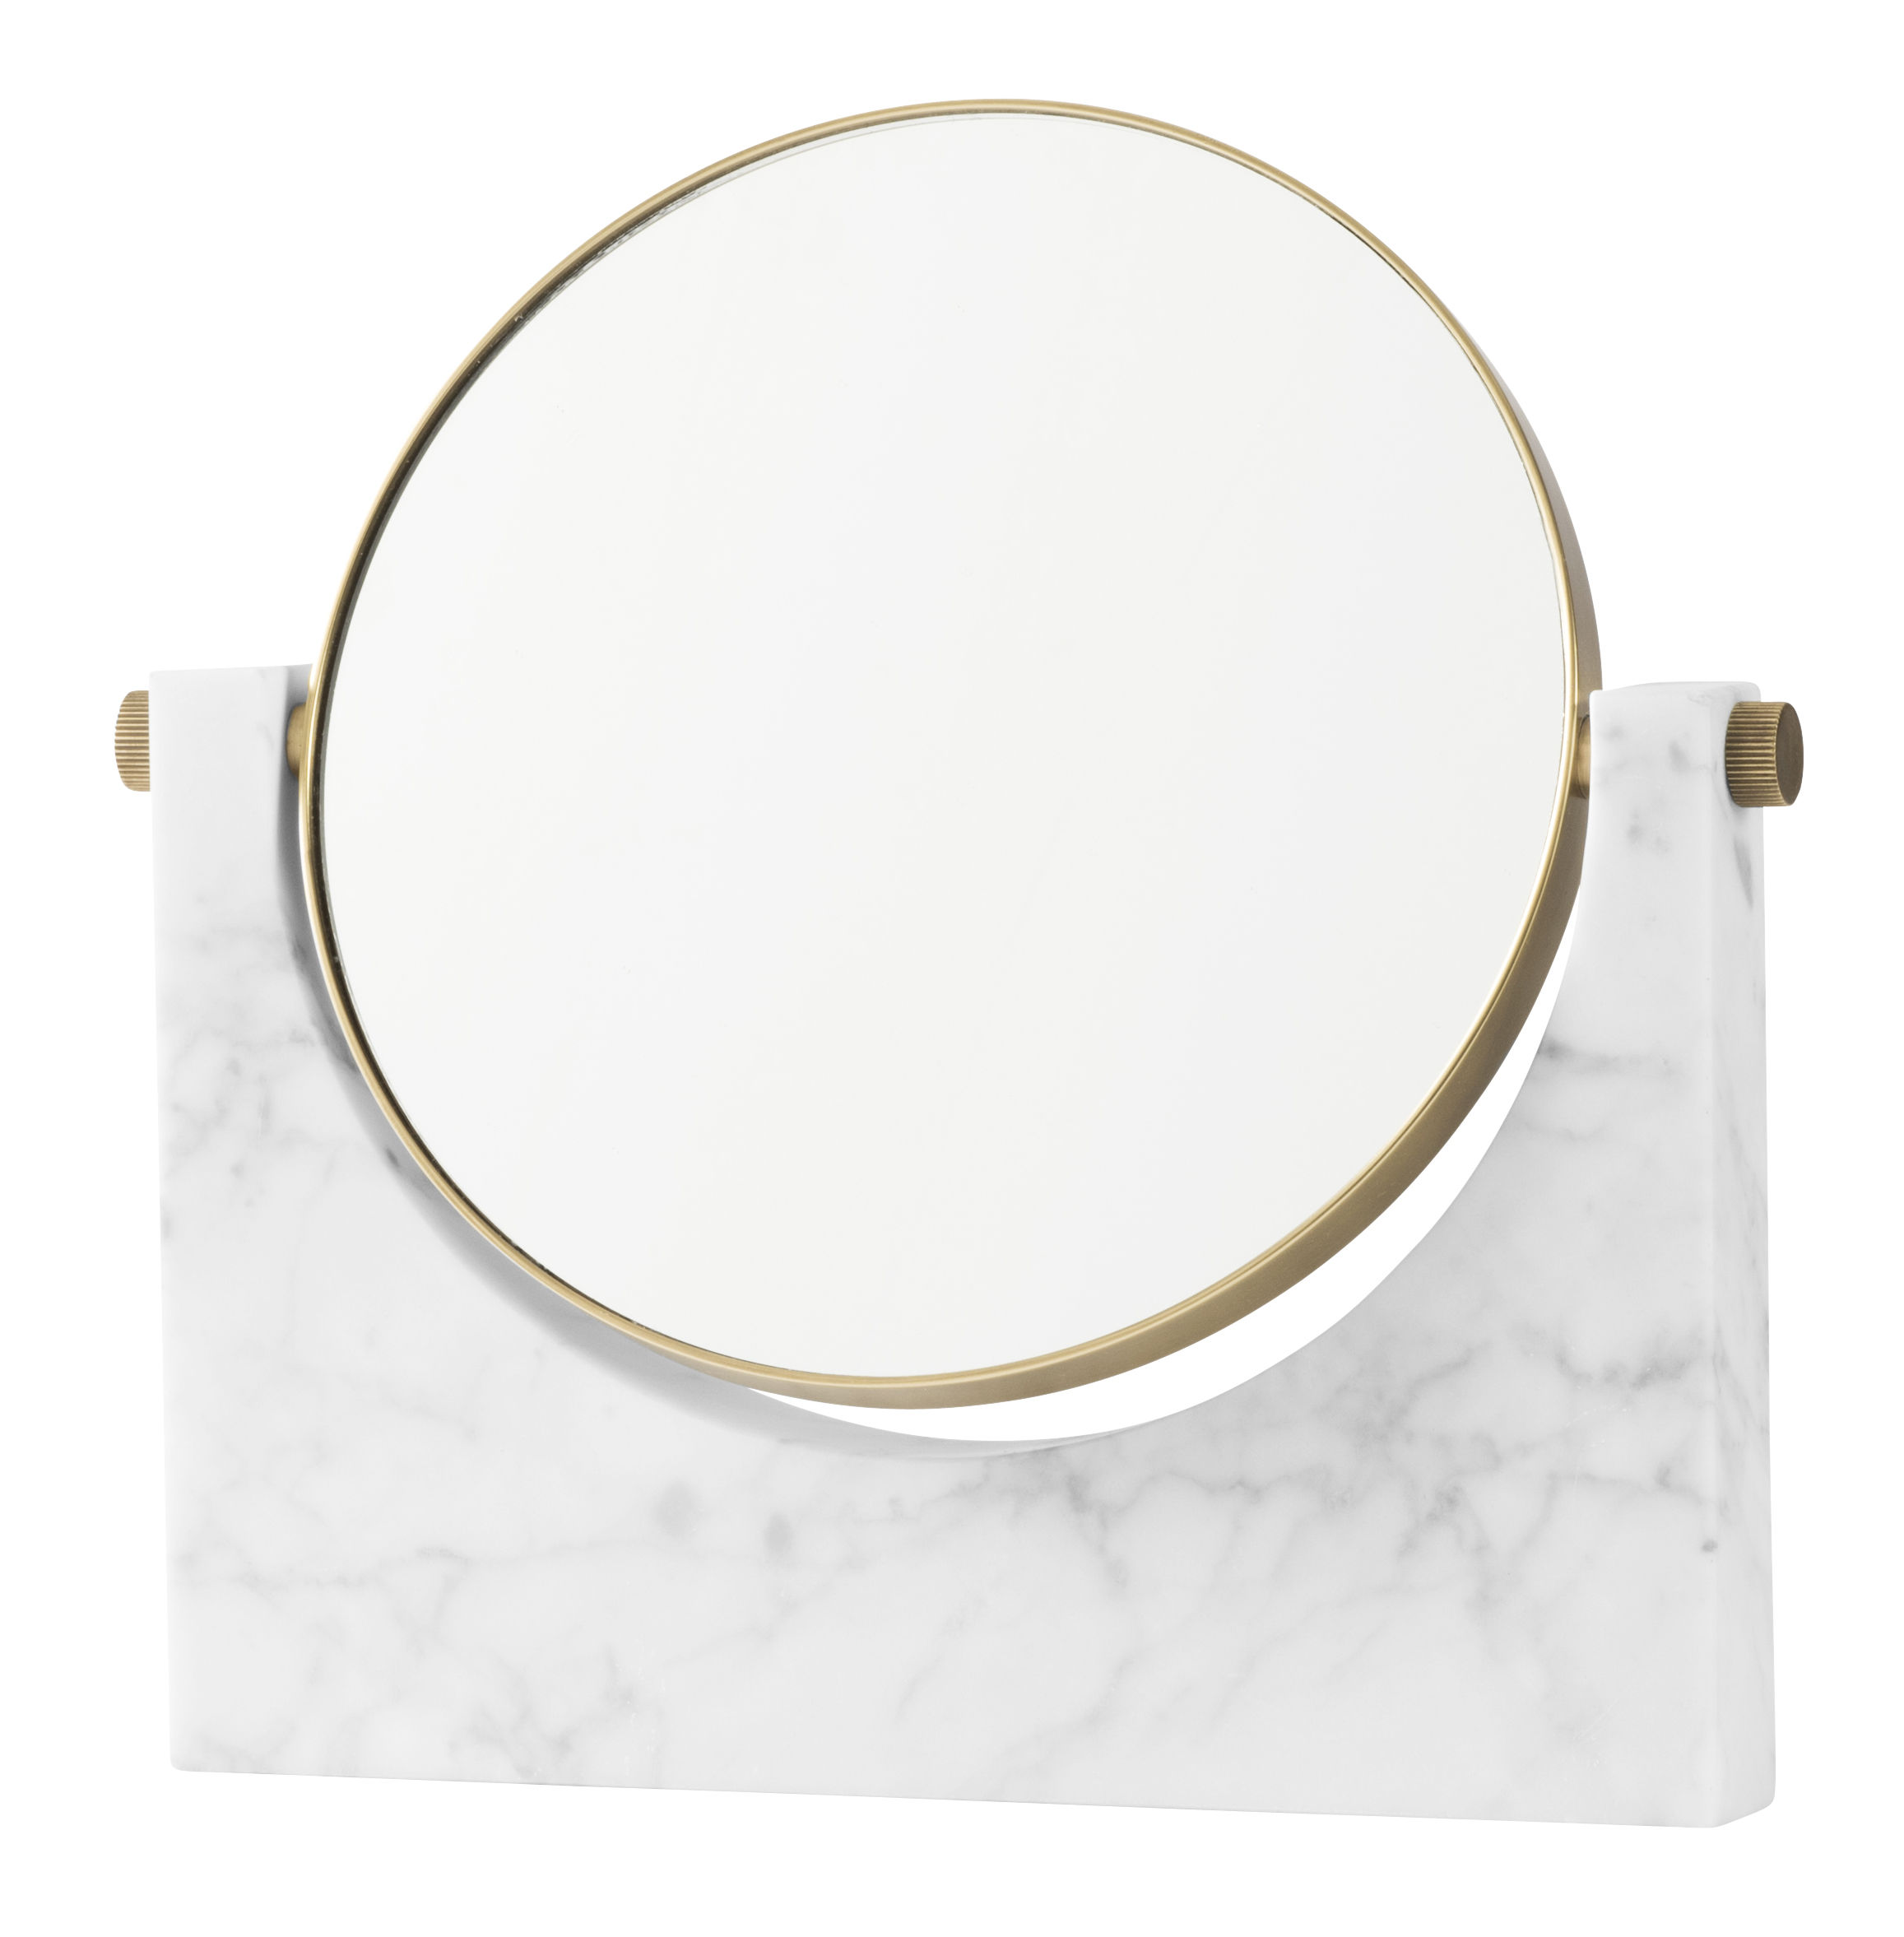 Decoration - Mirrors - Pepe Marble Free standing mirrors - Marble & brass - 26 x 25 cm by Menu - White - Brass, Marble, Mirror